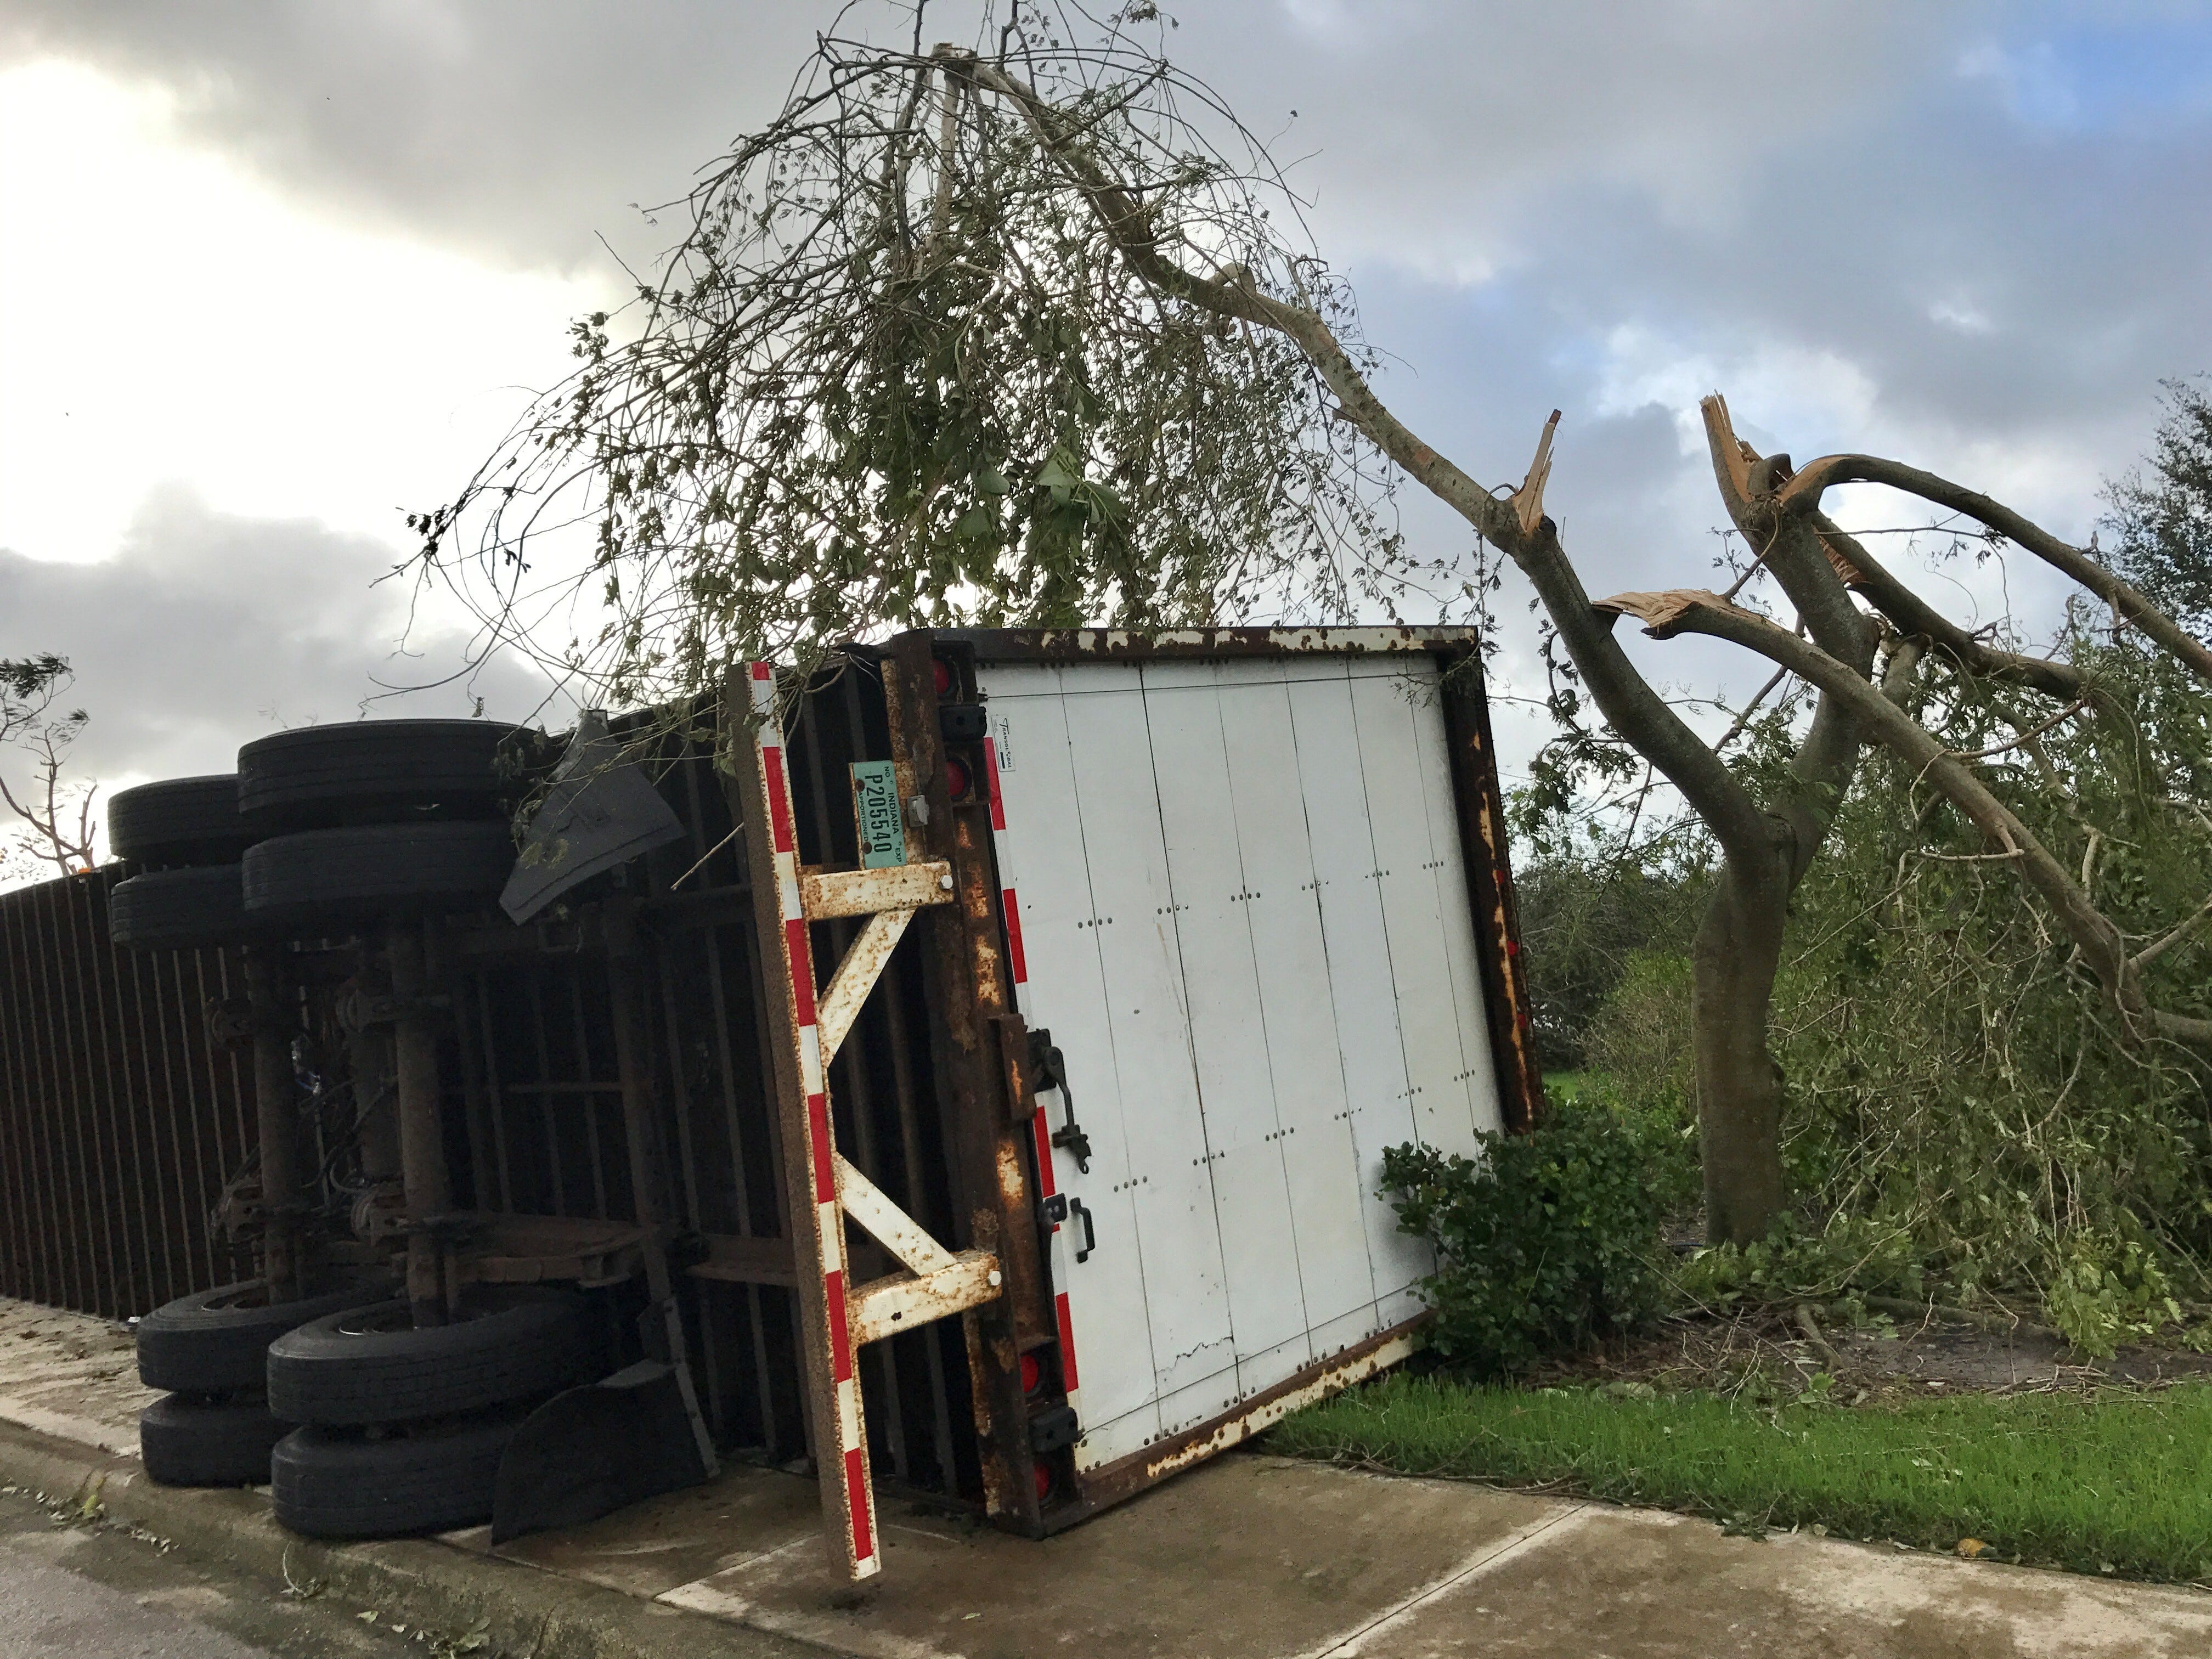 Hurricane Irma: Aftermath of storm in Naples, East Naples, Immokalee